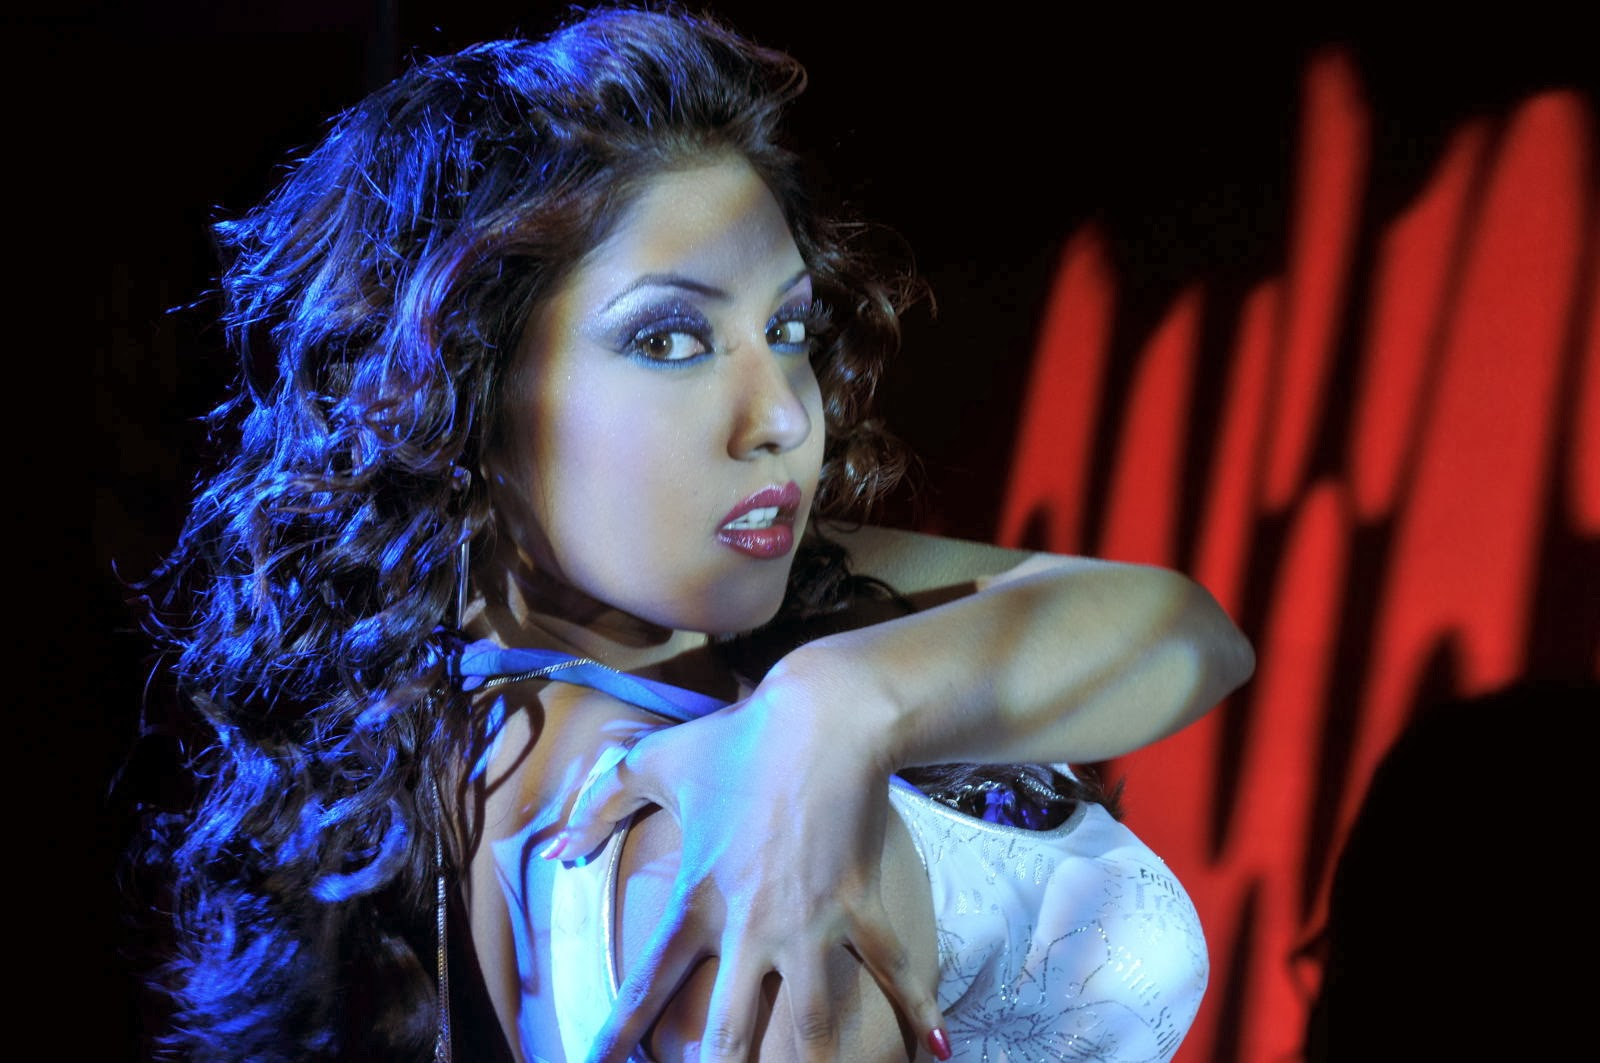 Dancing diva Komal jha hot photo gallery